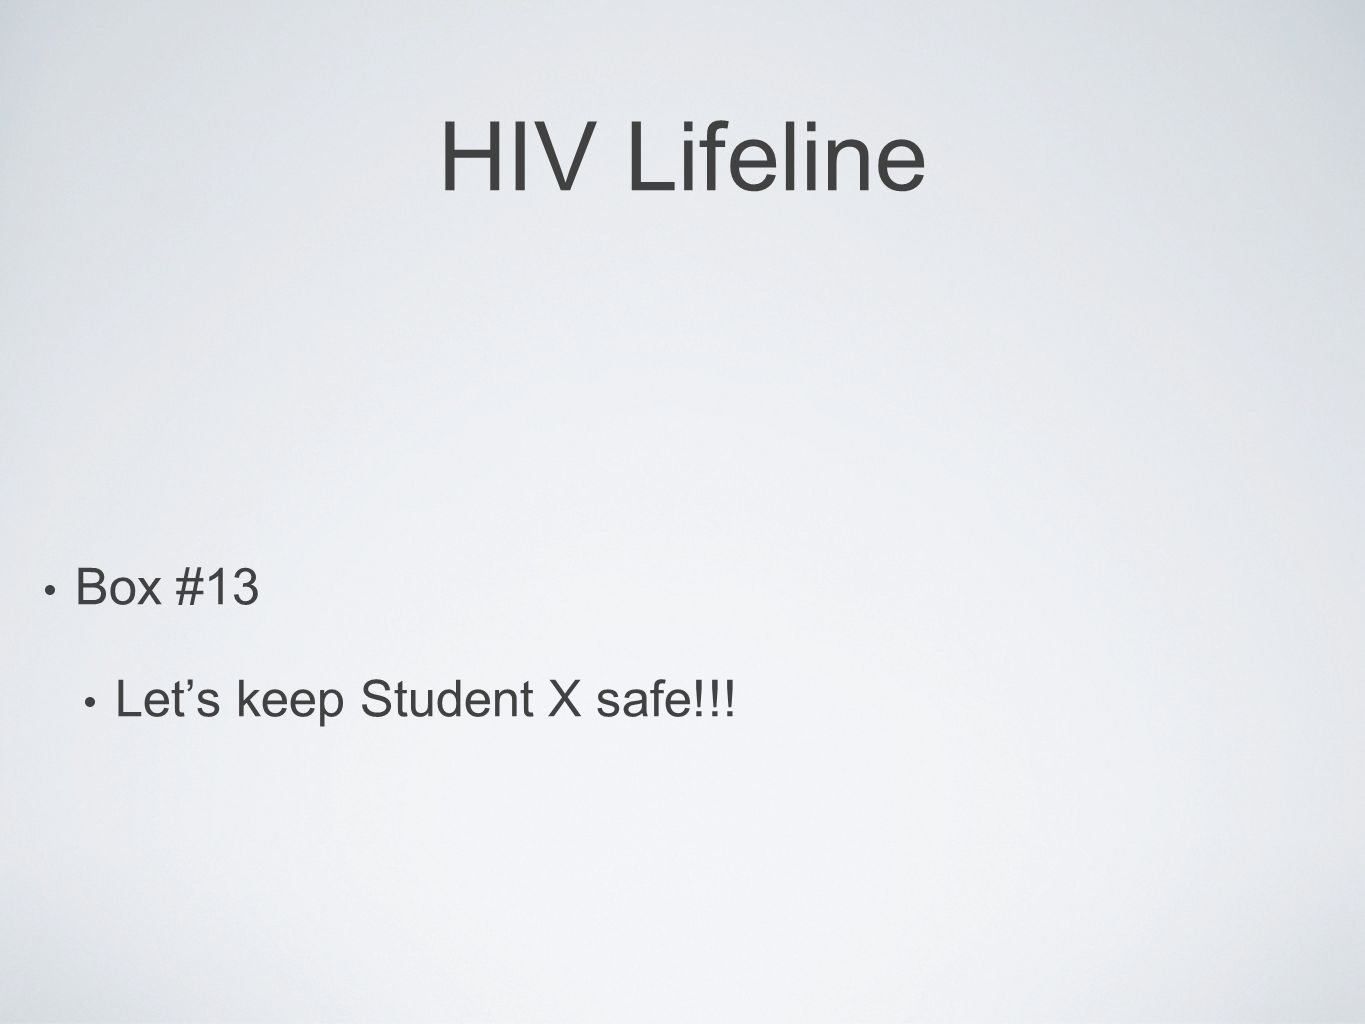 HIV Lifeline Box #13 Let's keep Student X safe!!!